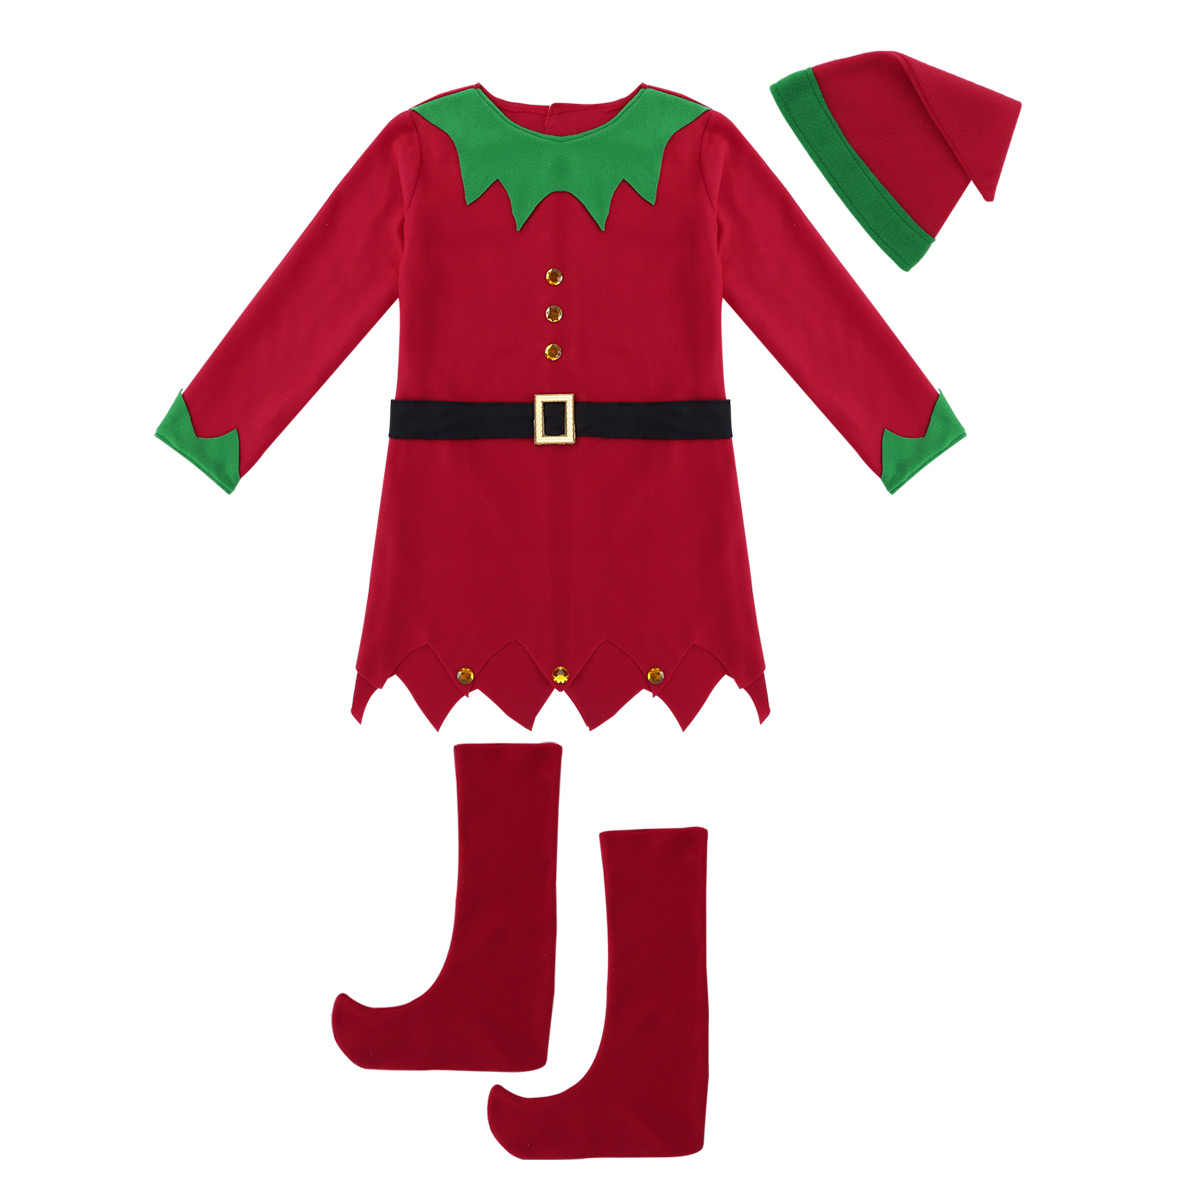 be7a83b2c77 TiaoBug Women Christmas Costume Long Sleeve Dress with Hat Belt Shoes Set  Adult Female Elf Costume Xmas Cosplay Party Dress Up